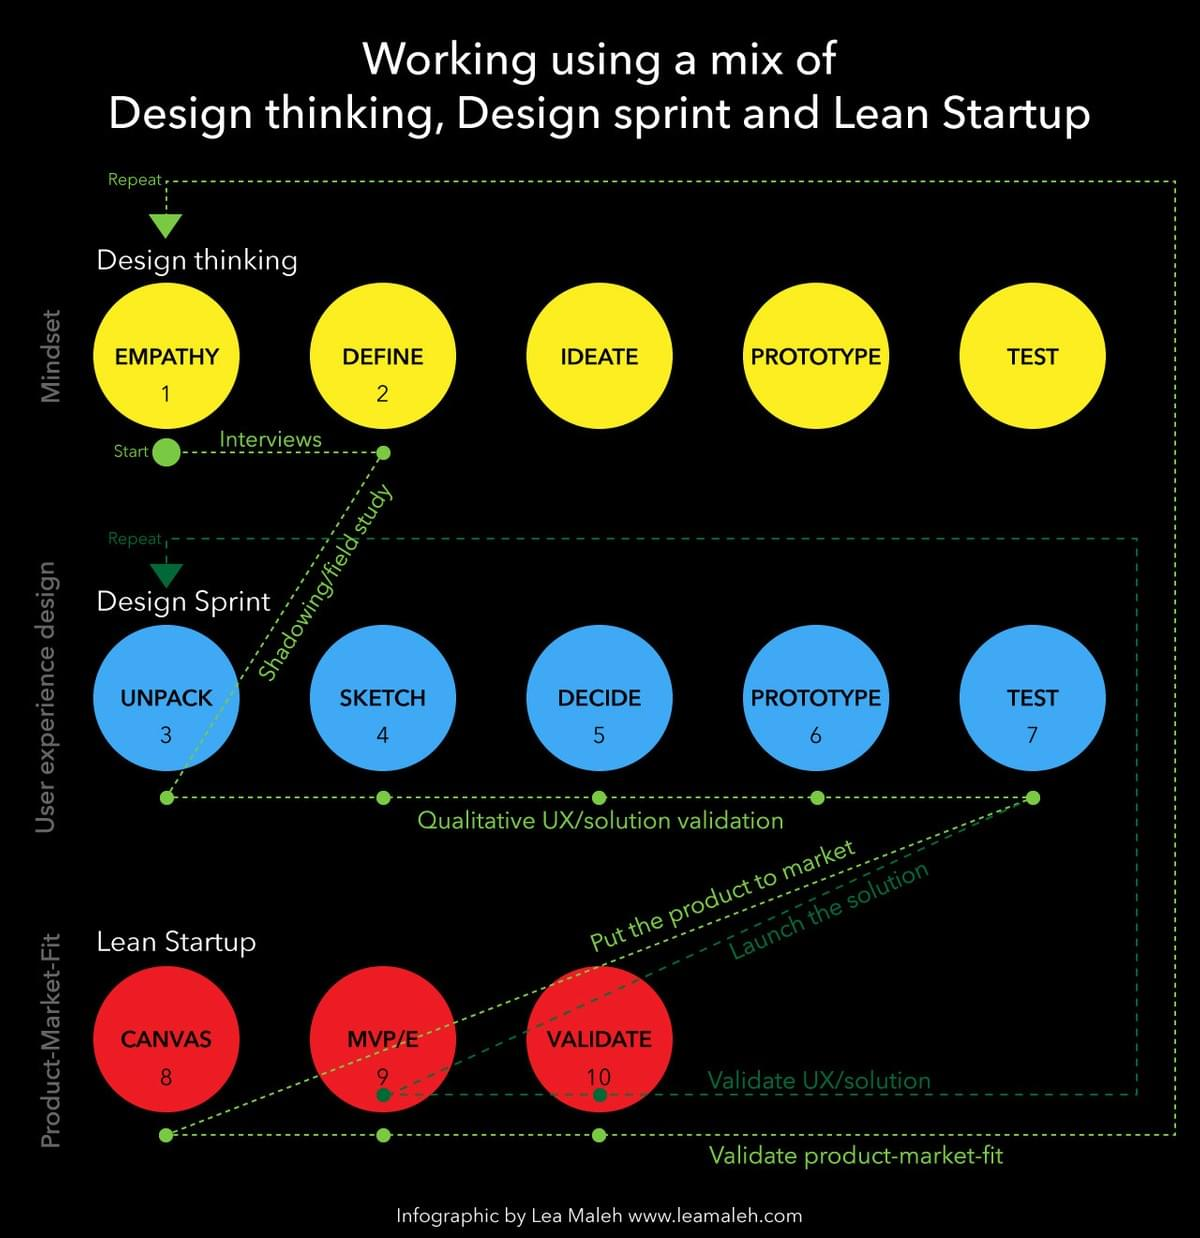 Working using a mix of Design thinking, Design sprint and Lean